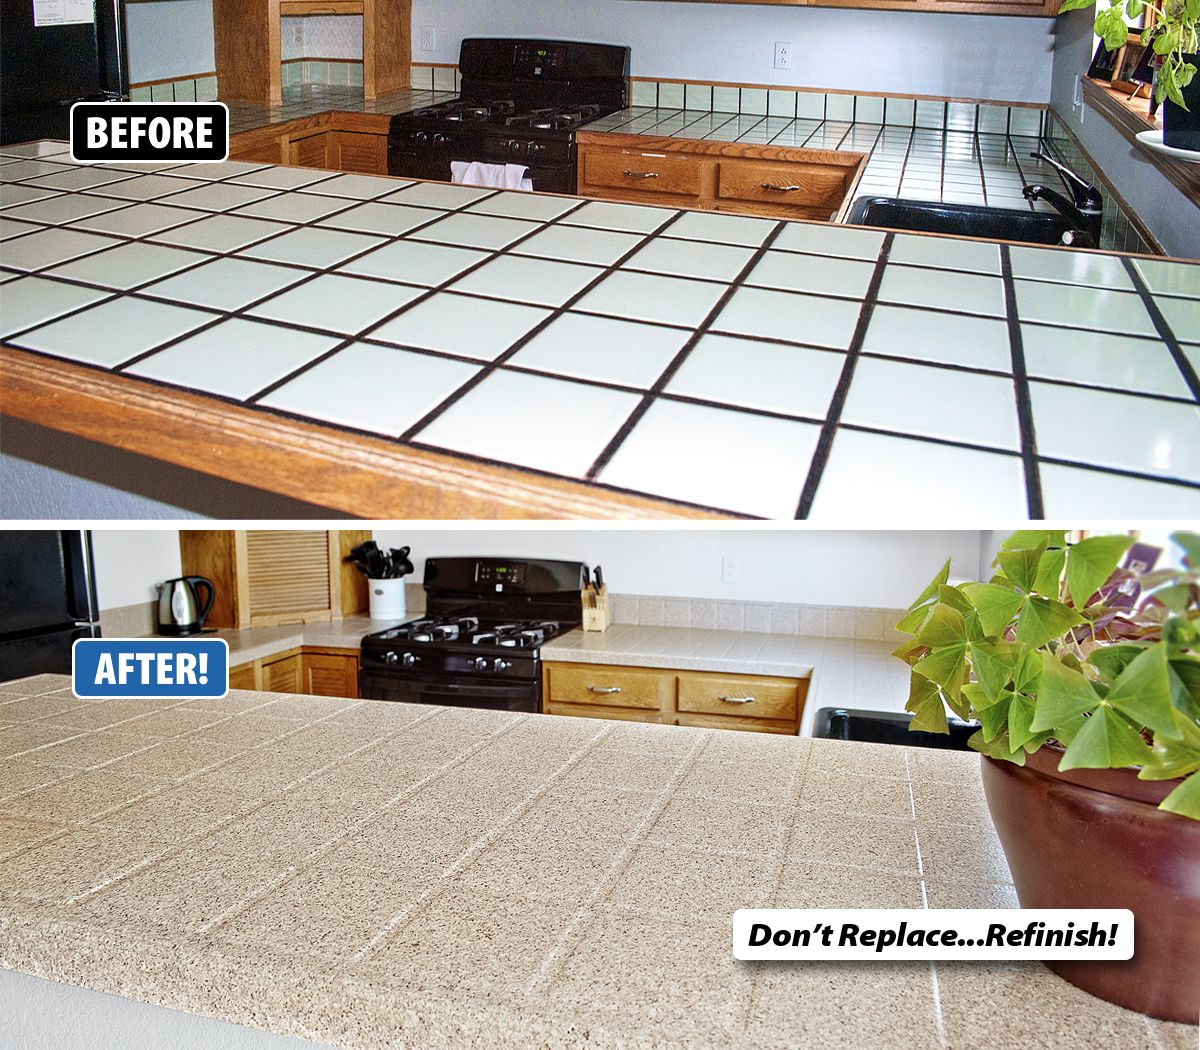 Tile Countertops Can Be Very Difficult To Clean Food Particles